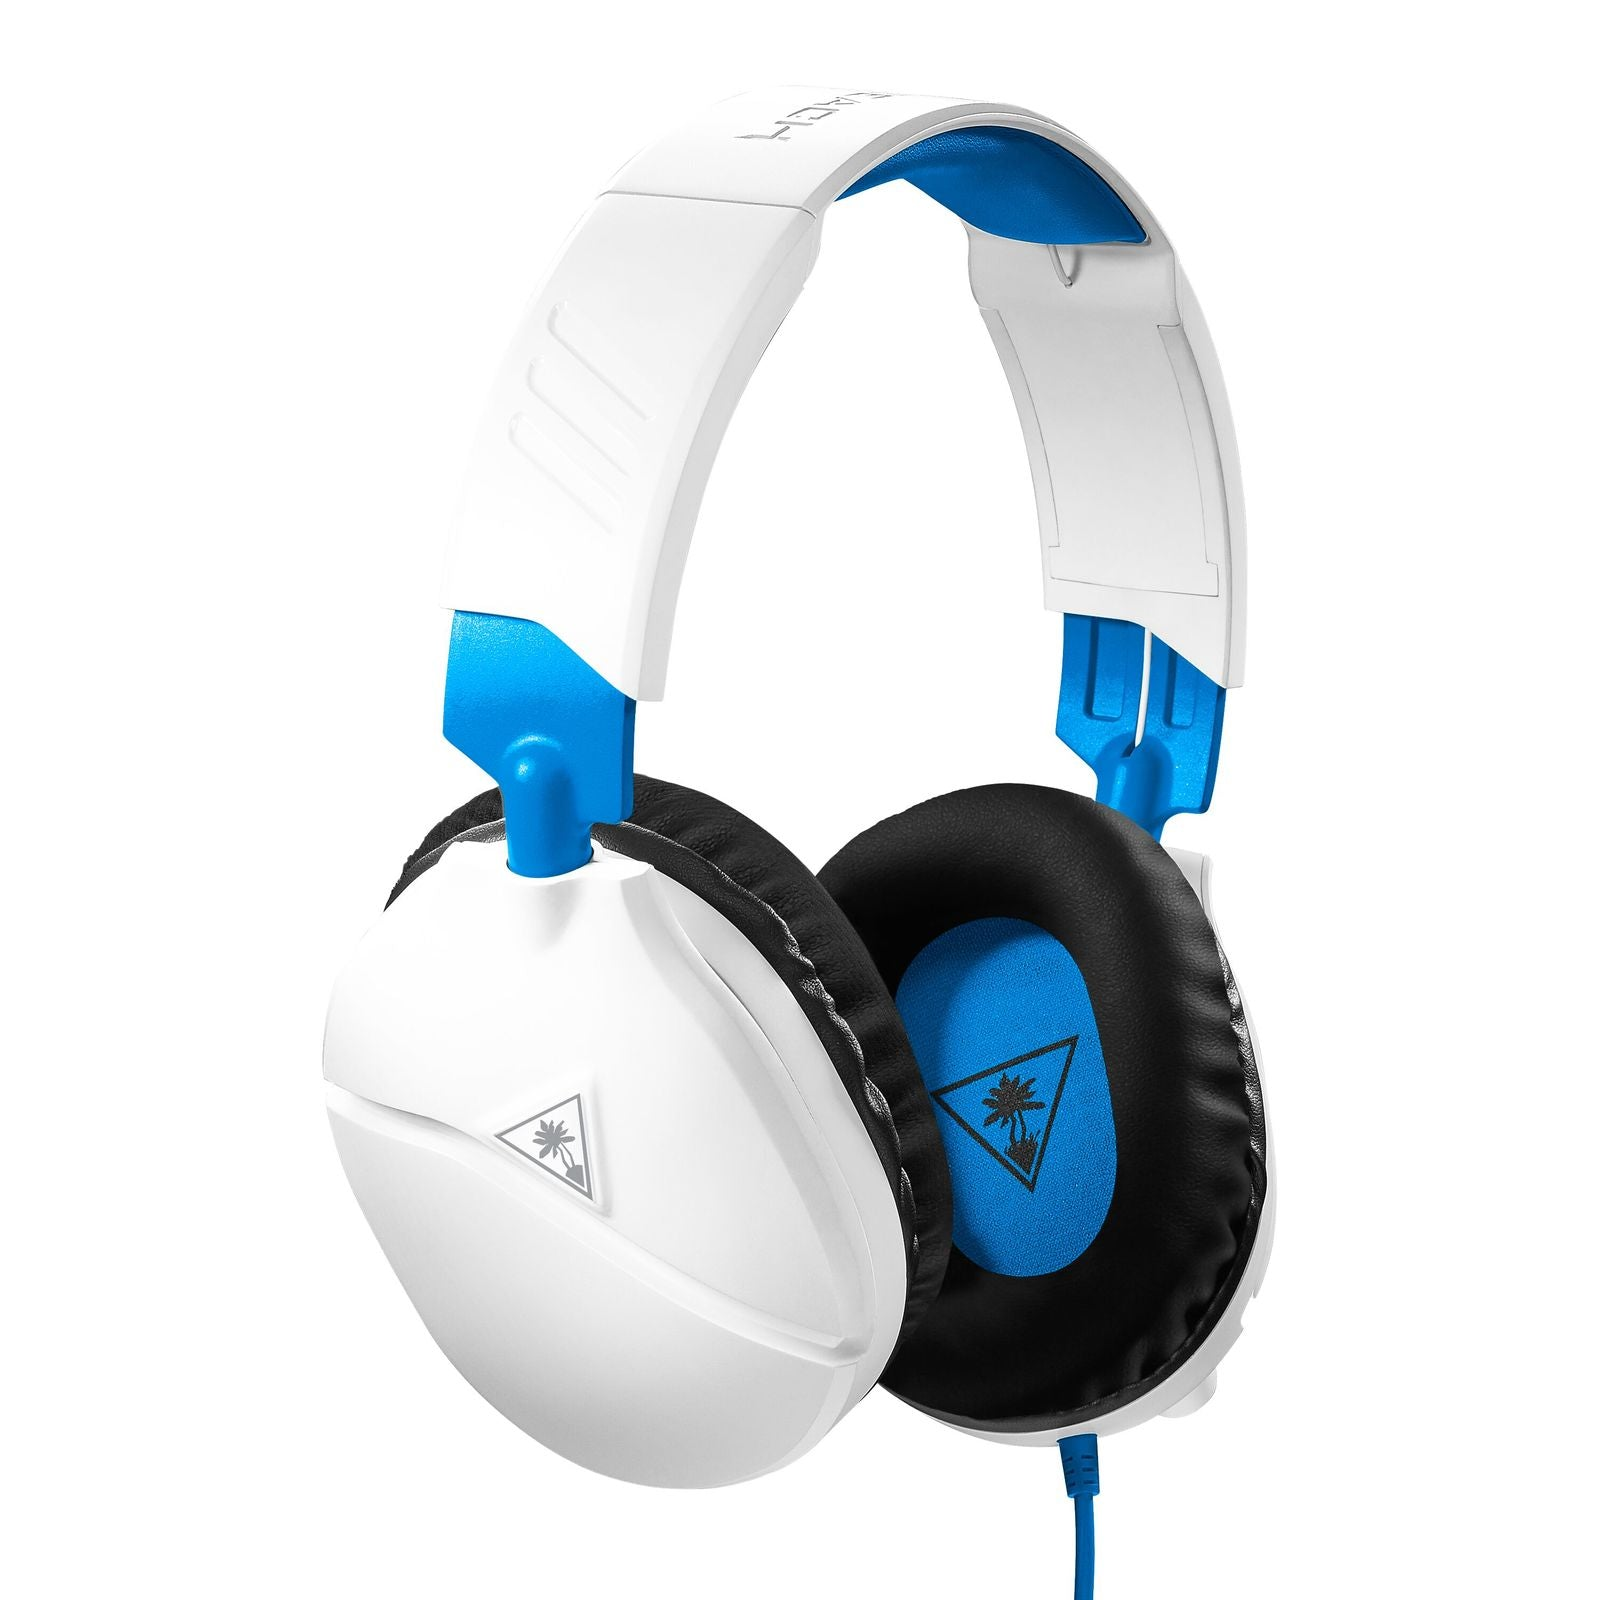 Turtle Beach Ear Force Recon 70P Stereo Gaming Headset (White) - Xbox One